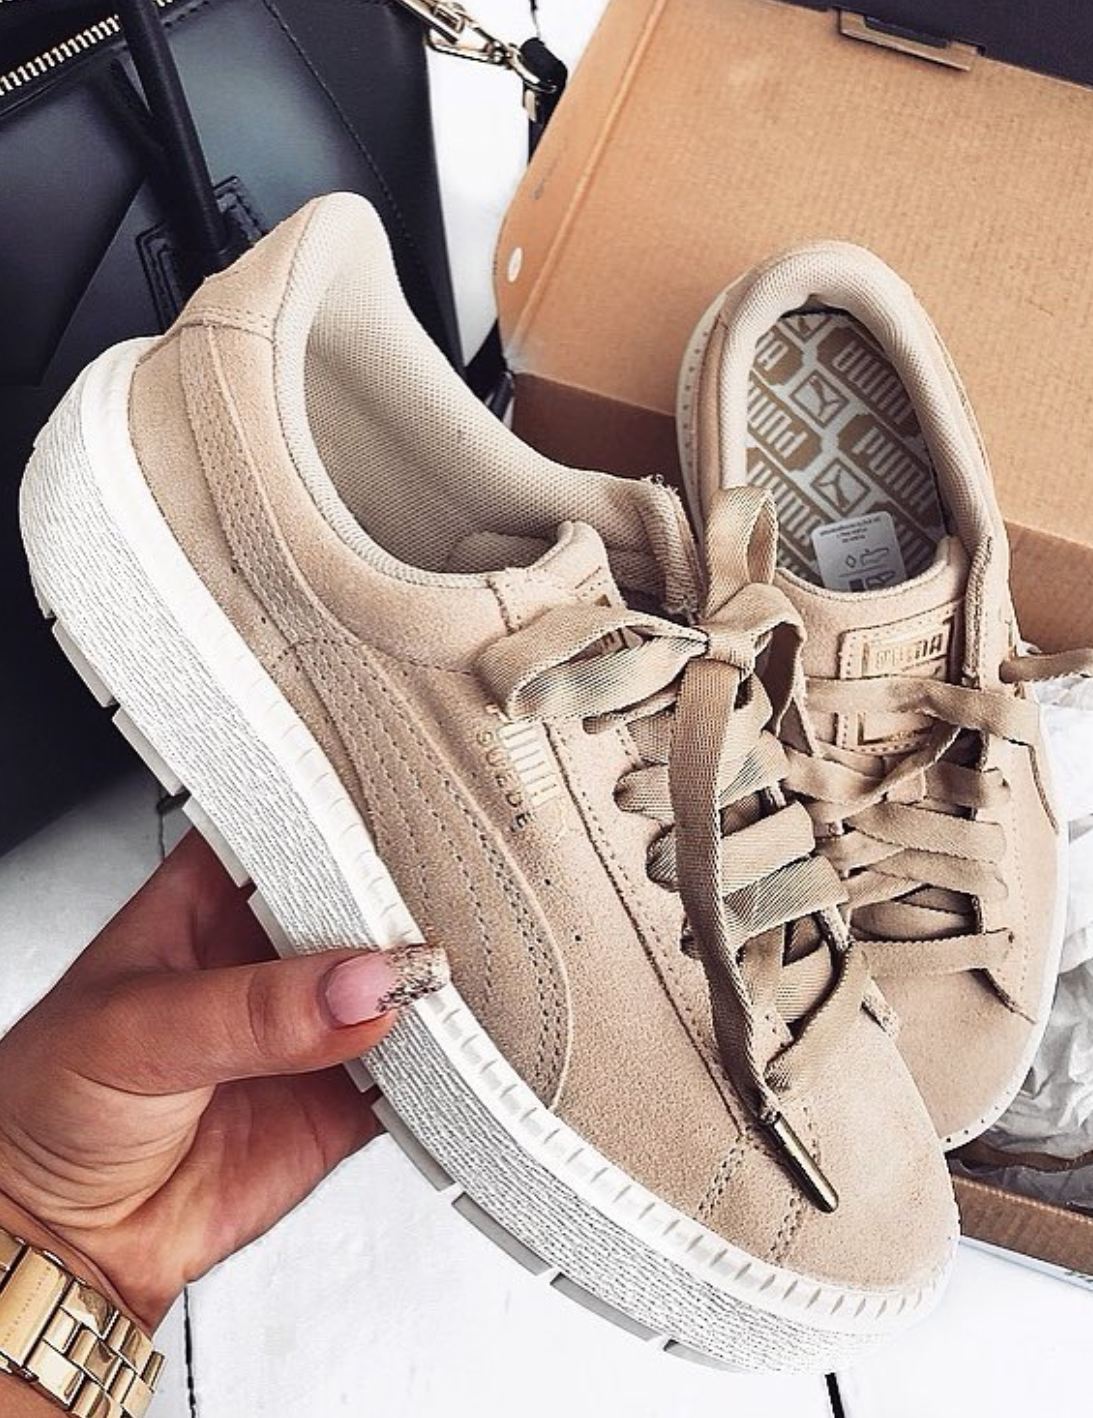 b026f1b27c Neutral Puma sneakers - Nude Puma Cali Cream Tan sneakers for women | Photo  by @